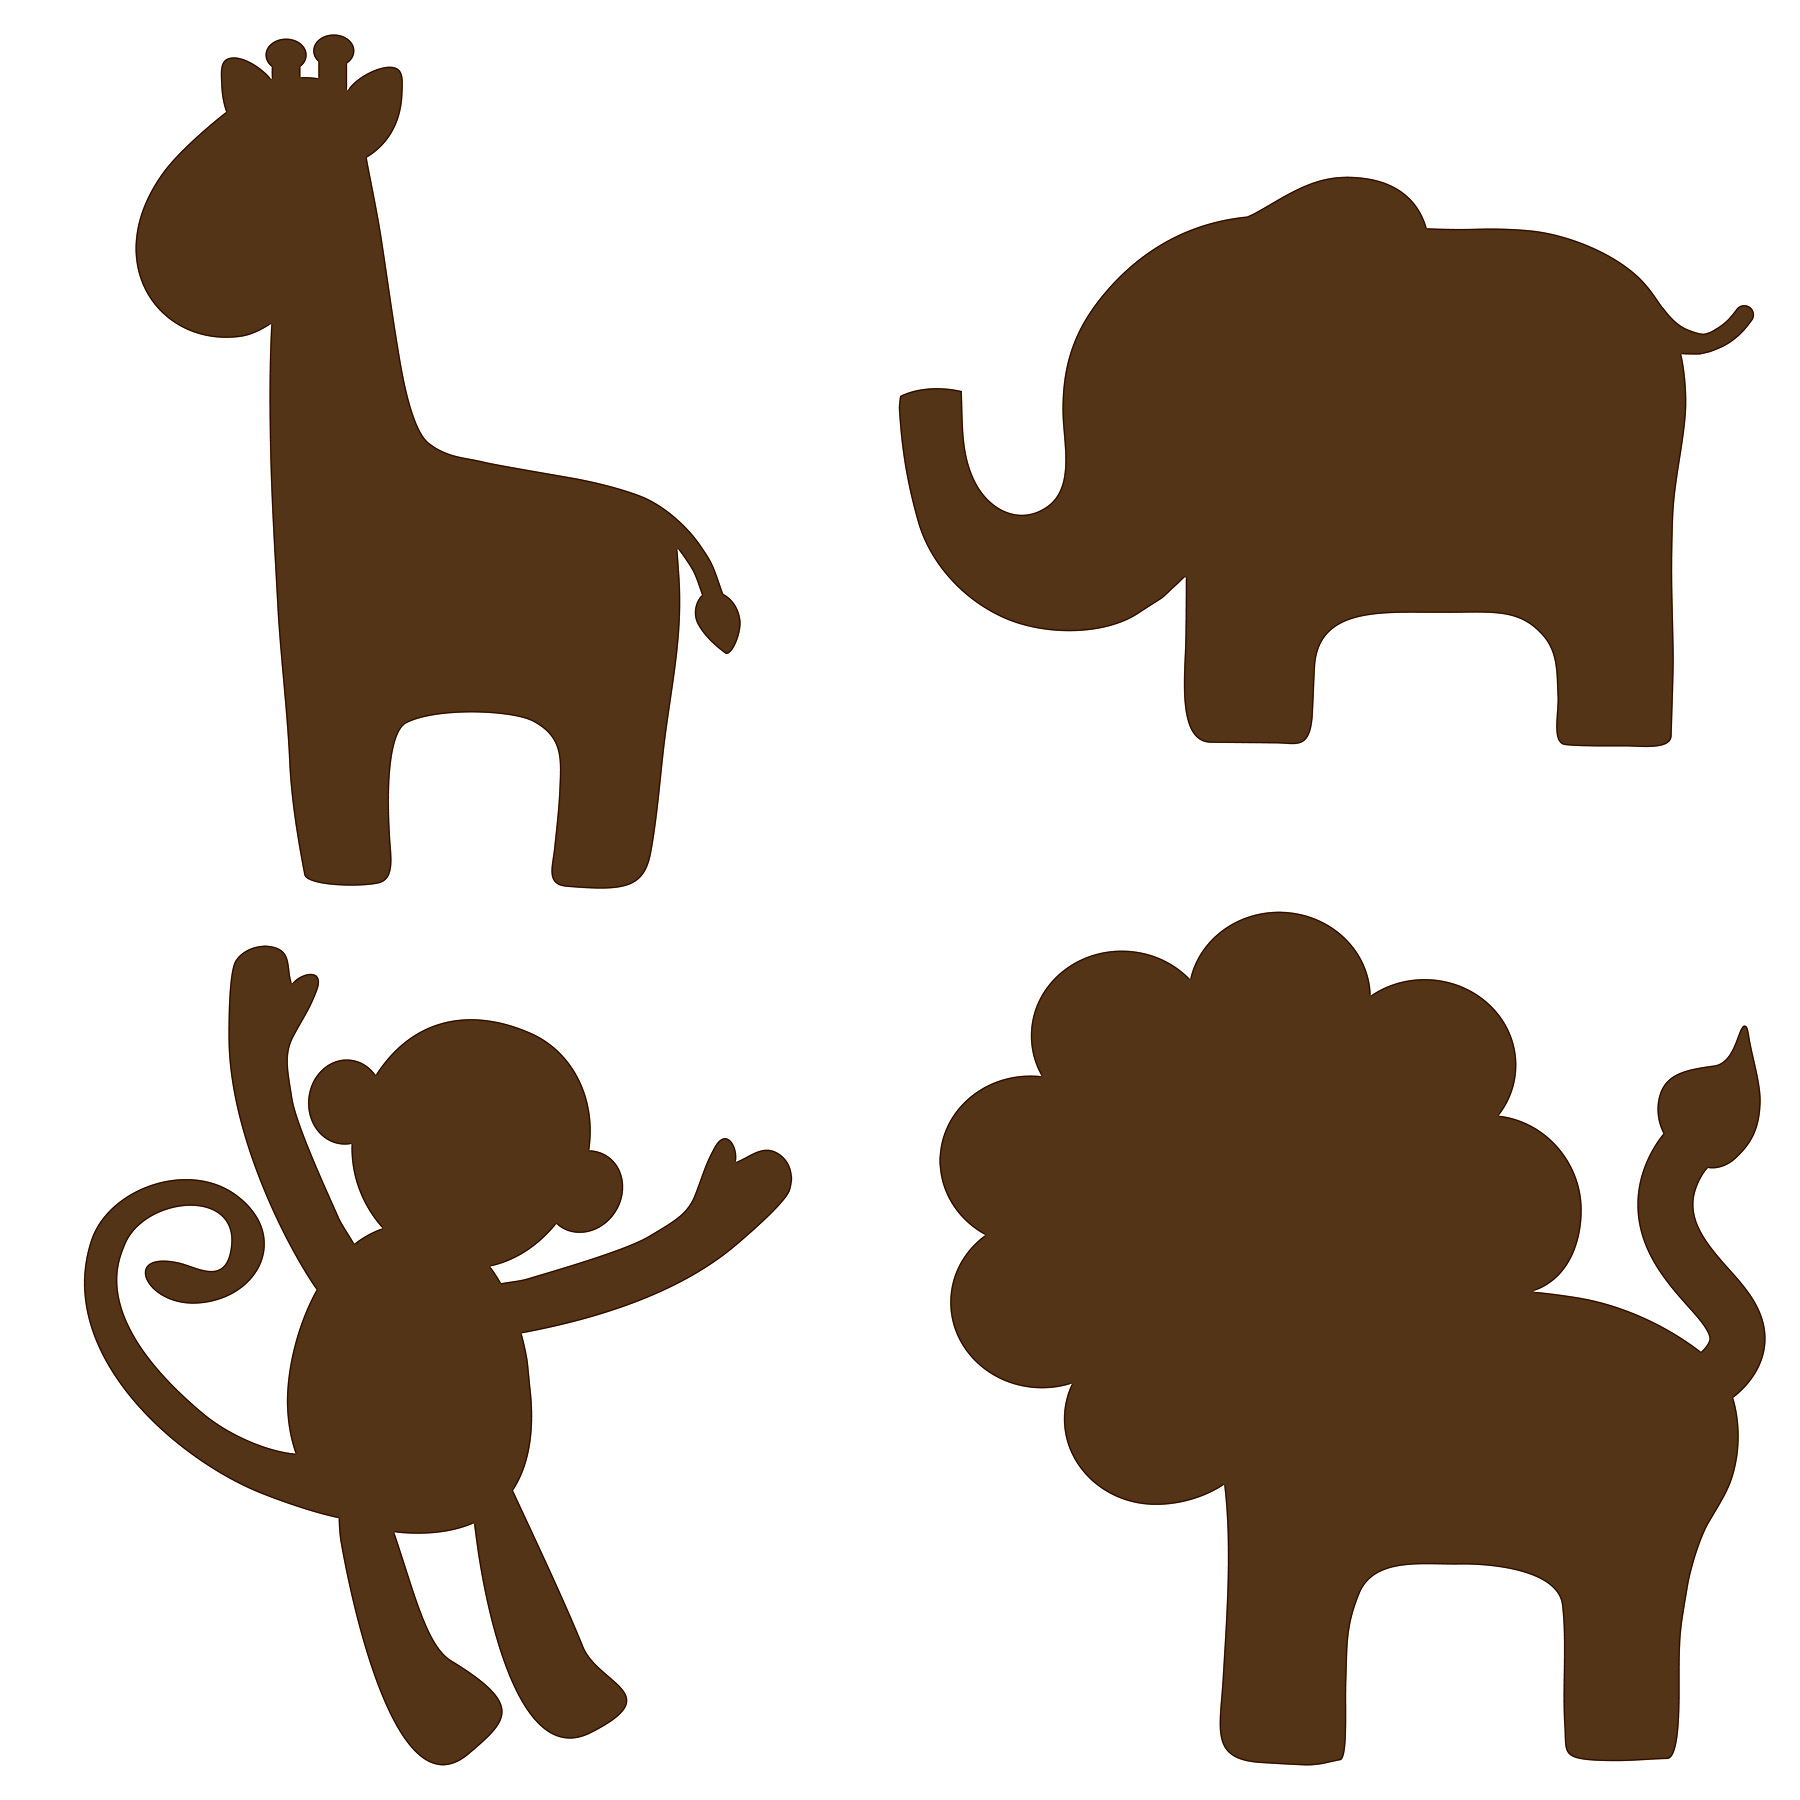 Wall Pops Espresso Brown Jungle Silhouettes Decals.